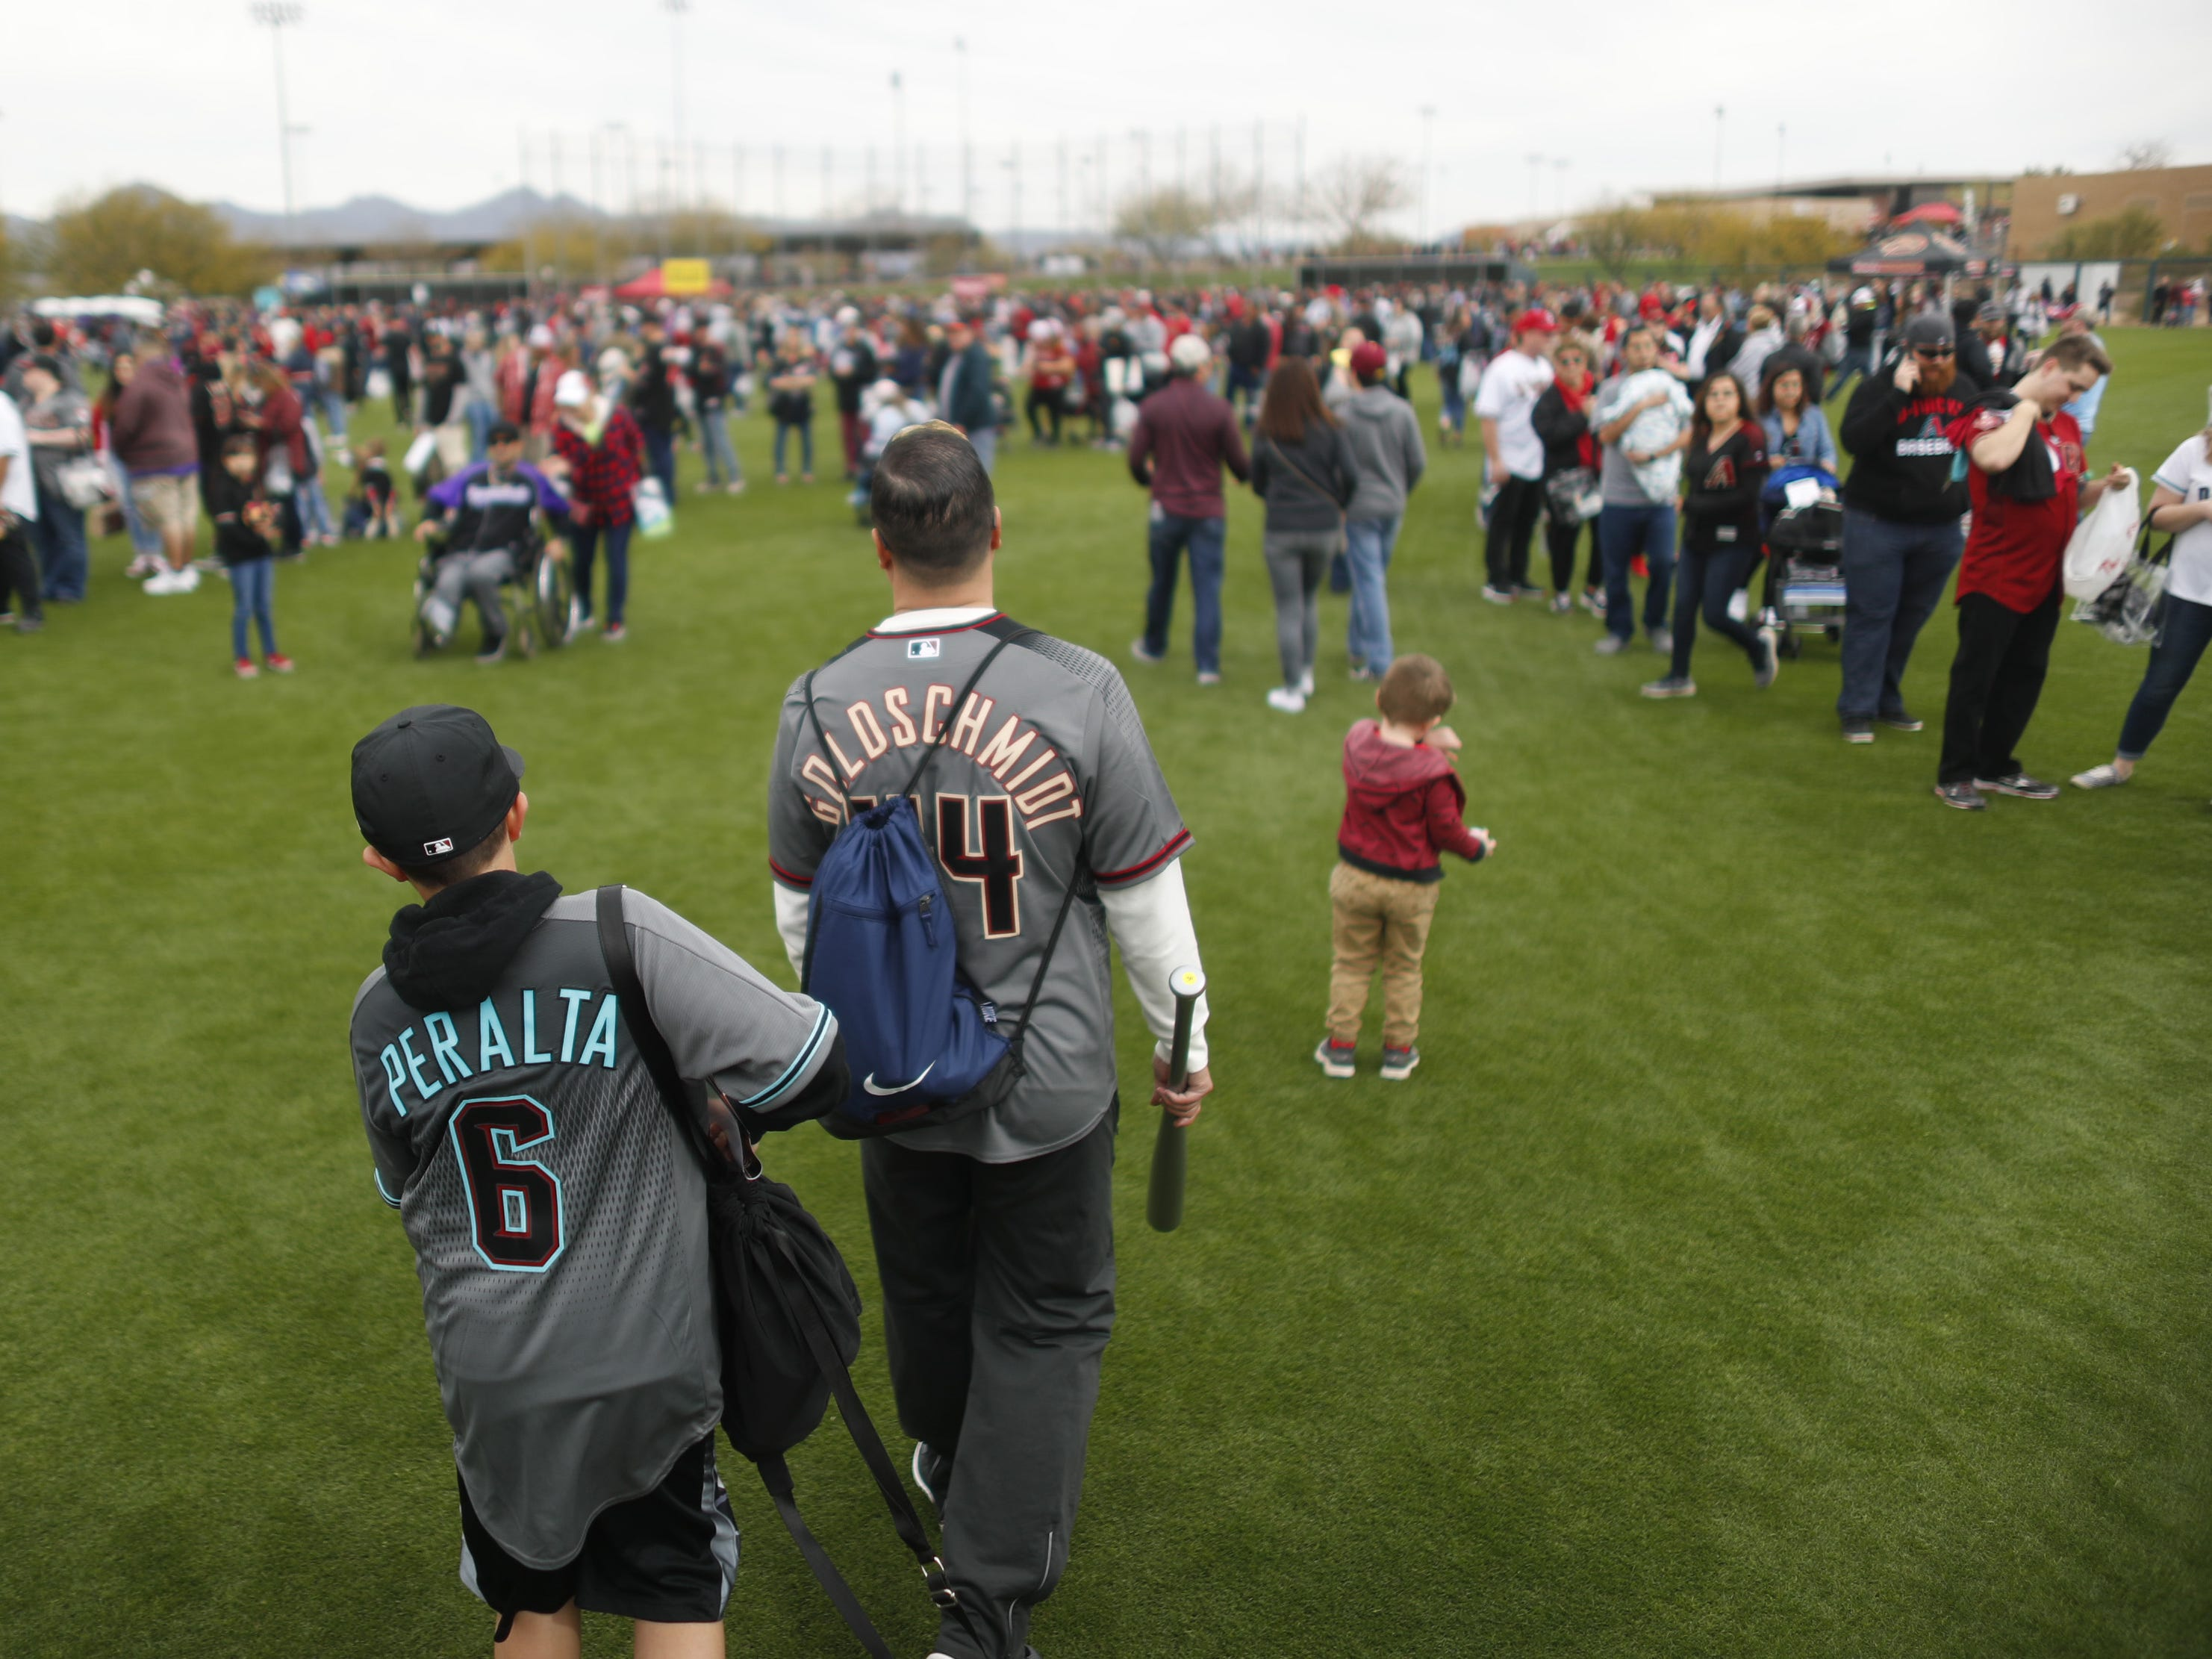 Fans make their way through the autograph lines during the Diamondbacks Fan Fest at Salt River at Talking Sticks on February 9, 2019.